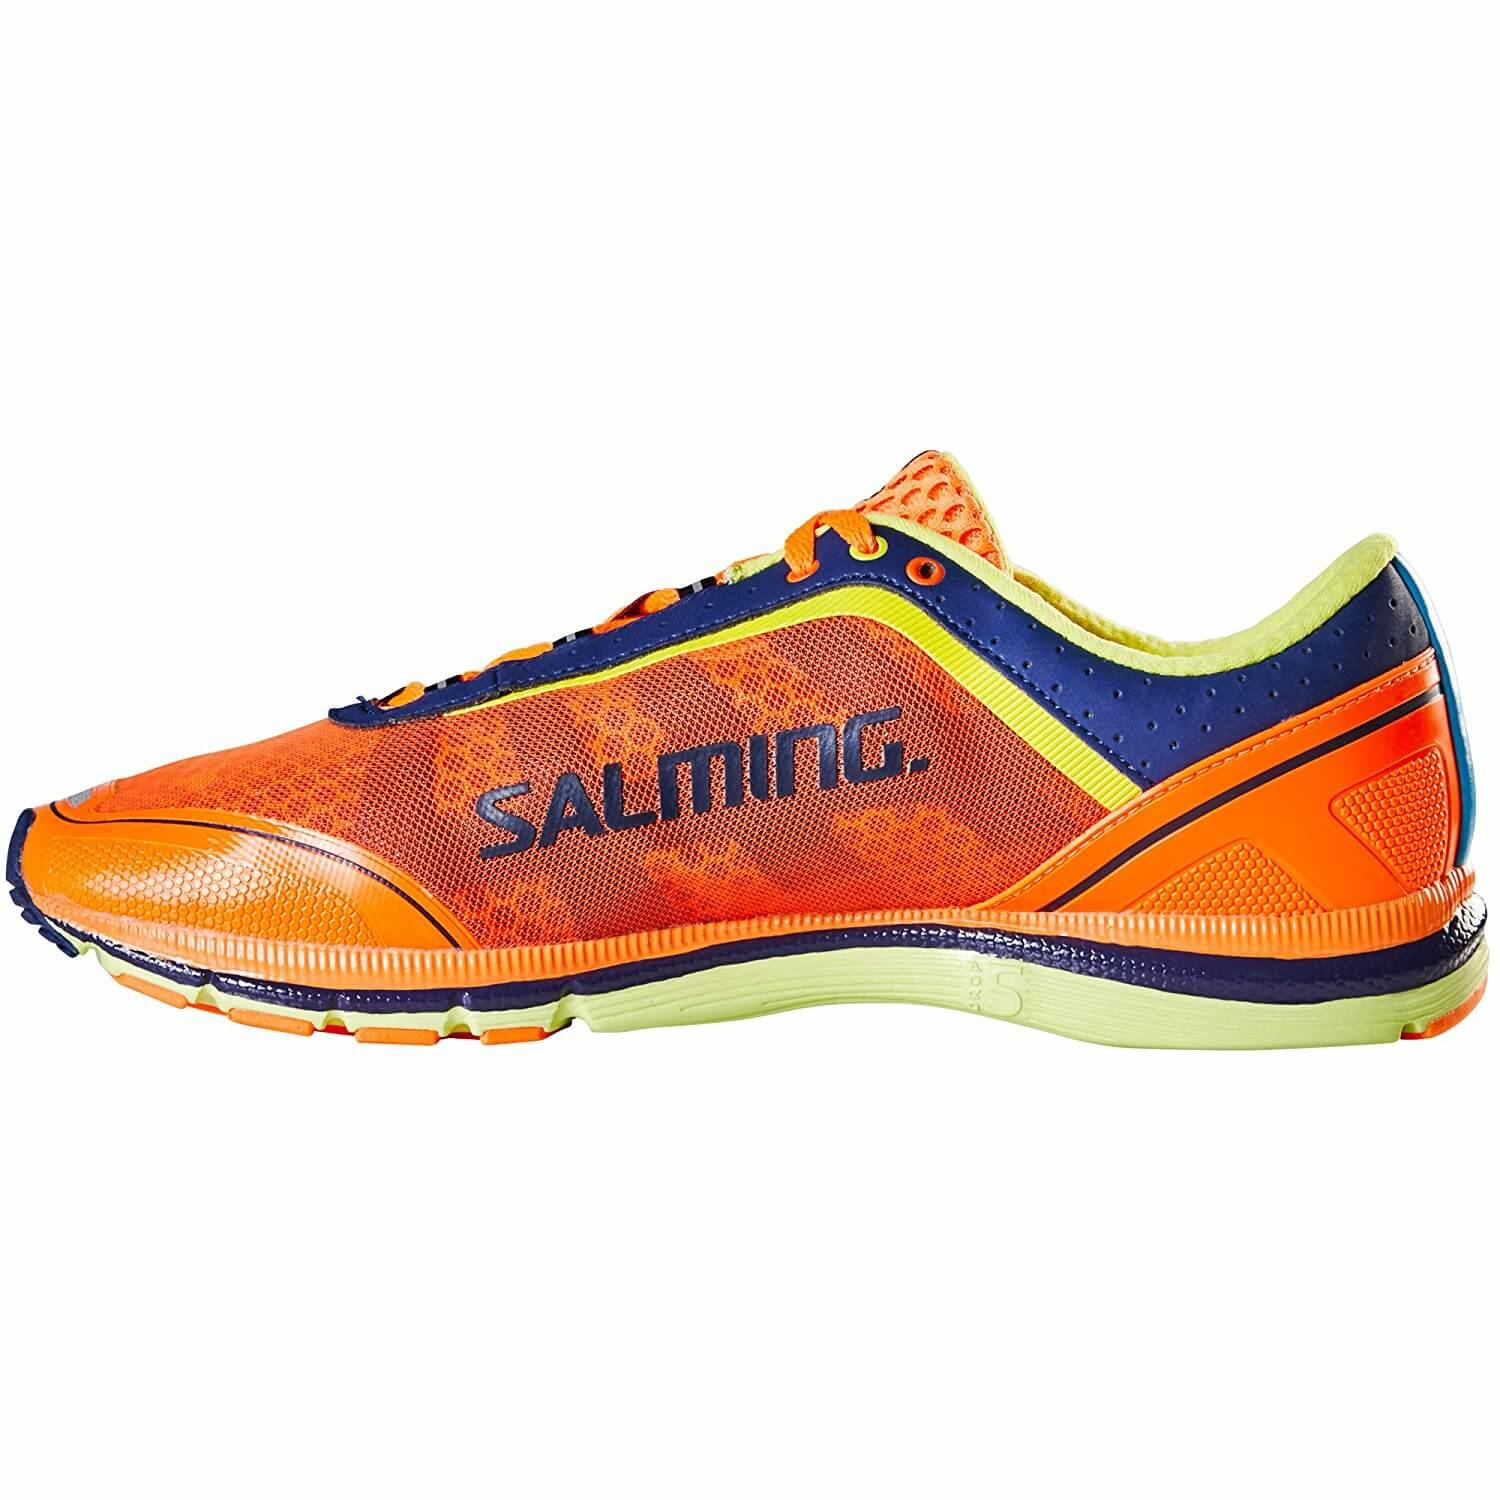 Salming Speed 3 Right Inner Midsole